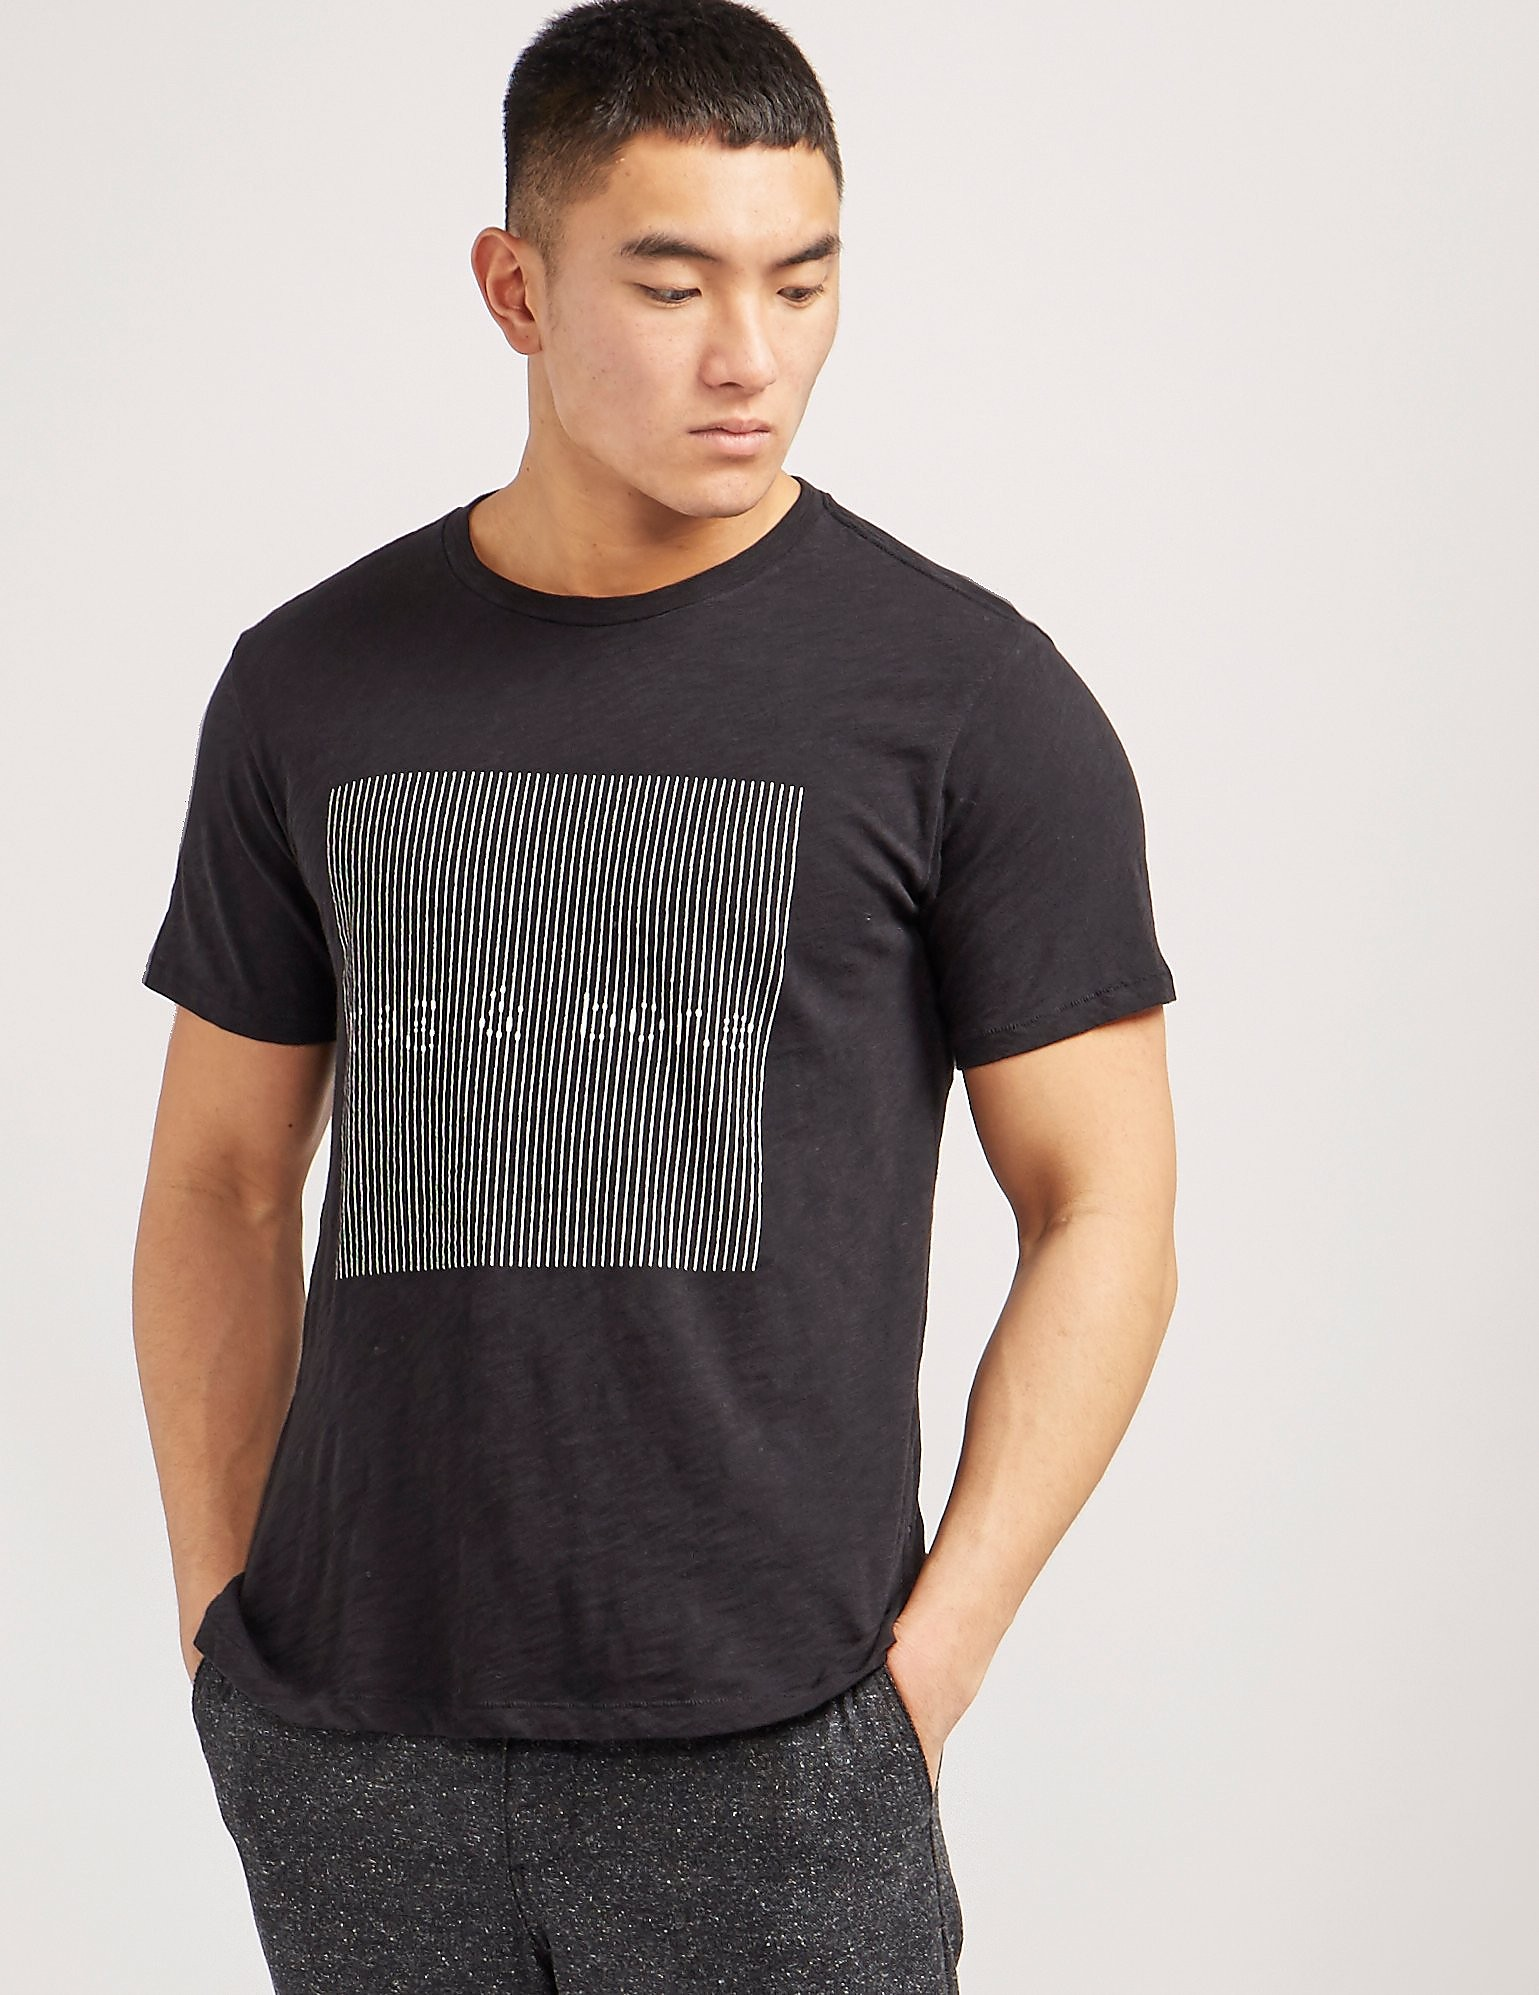 Rag & Bone Short Sleeve Logo T-Shirt